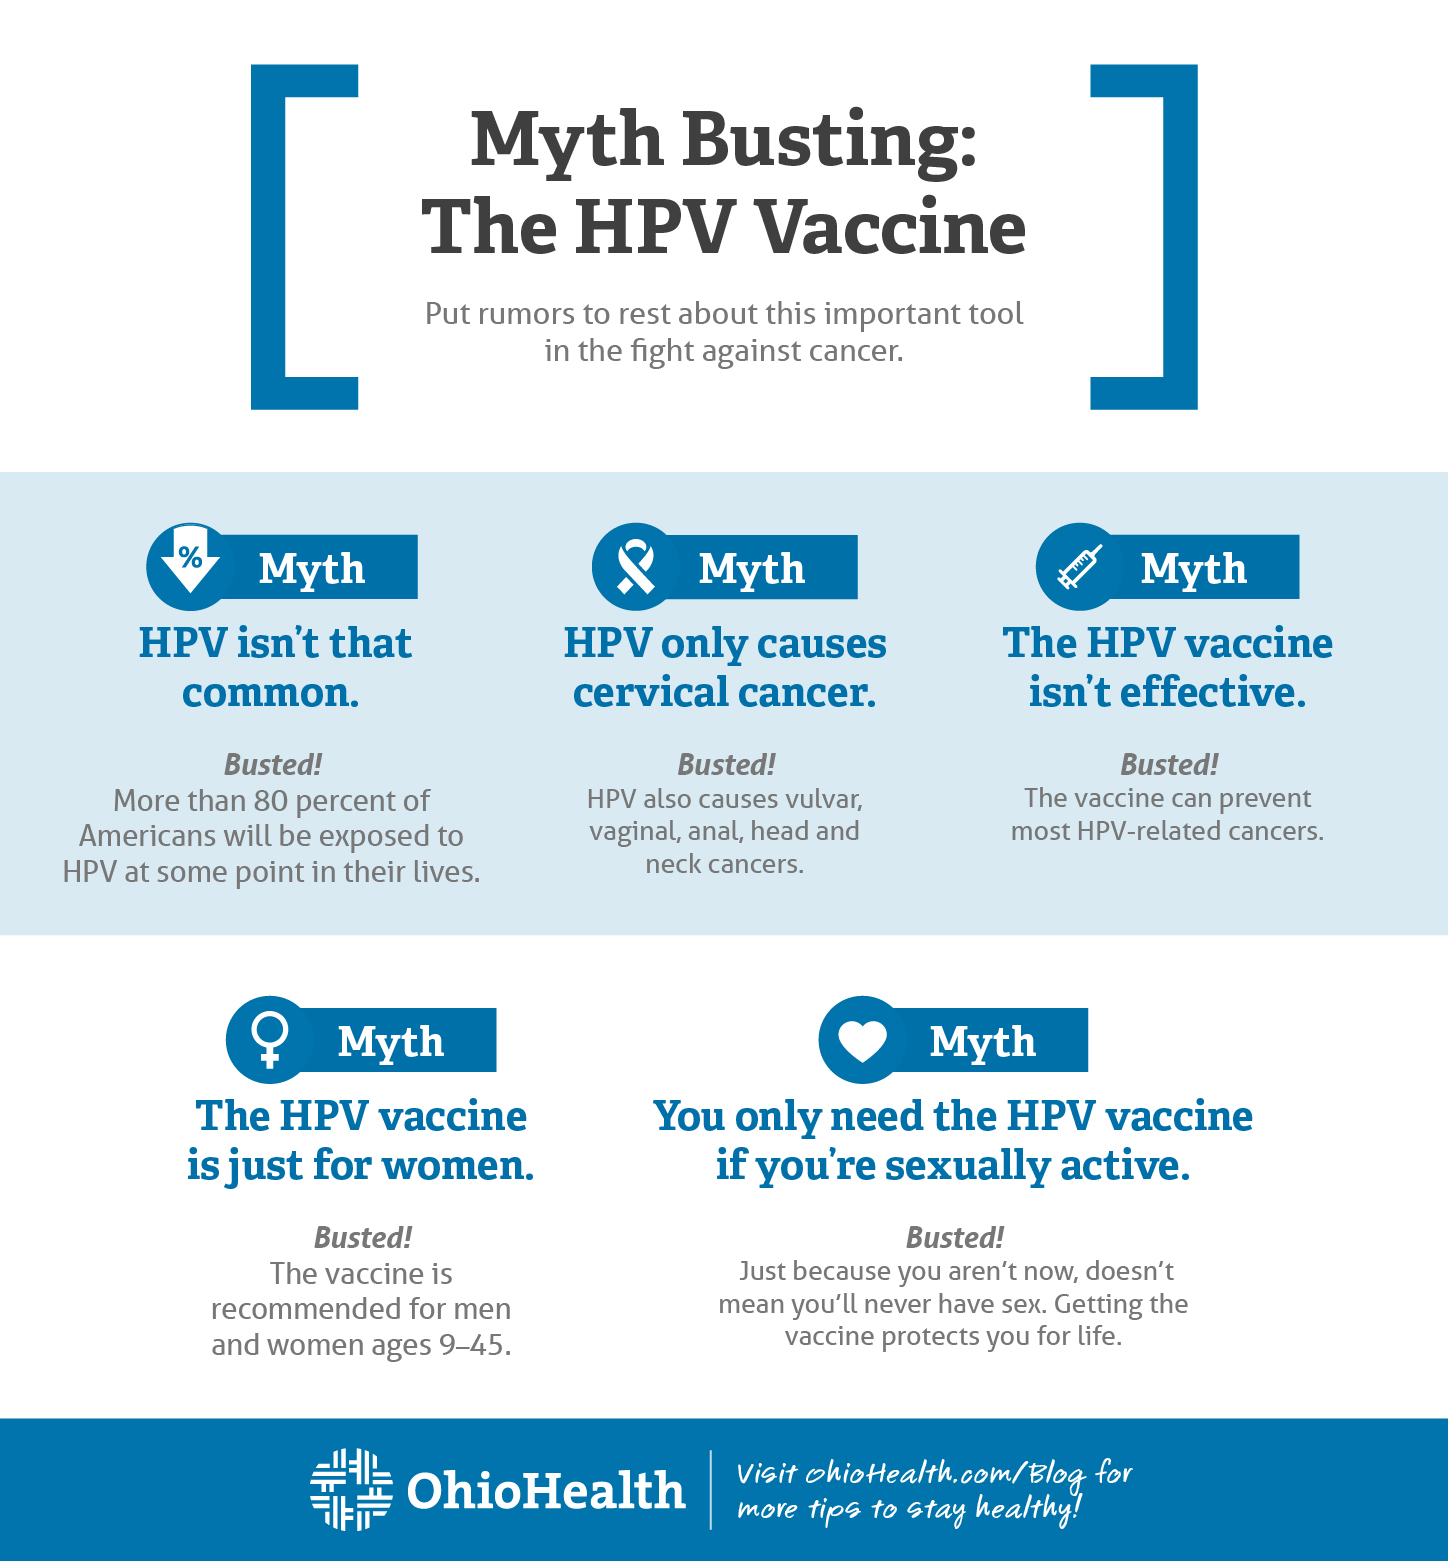 HPV Myth busting and Facts